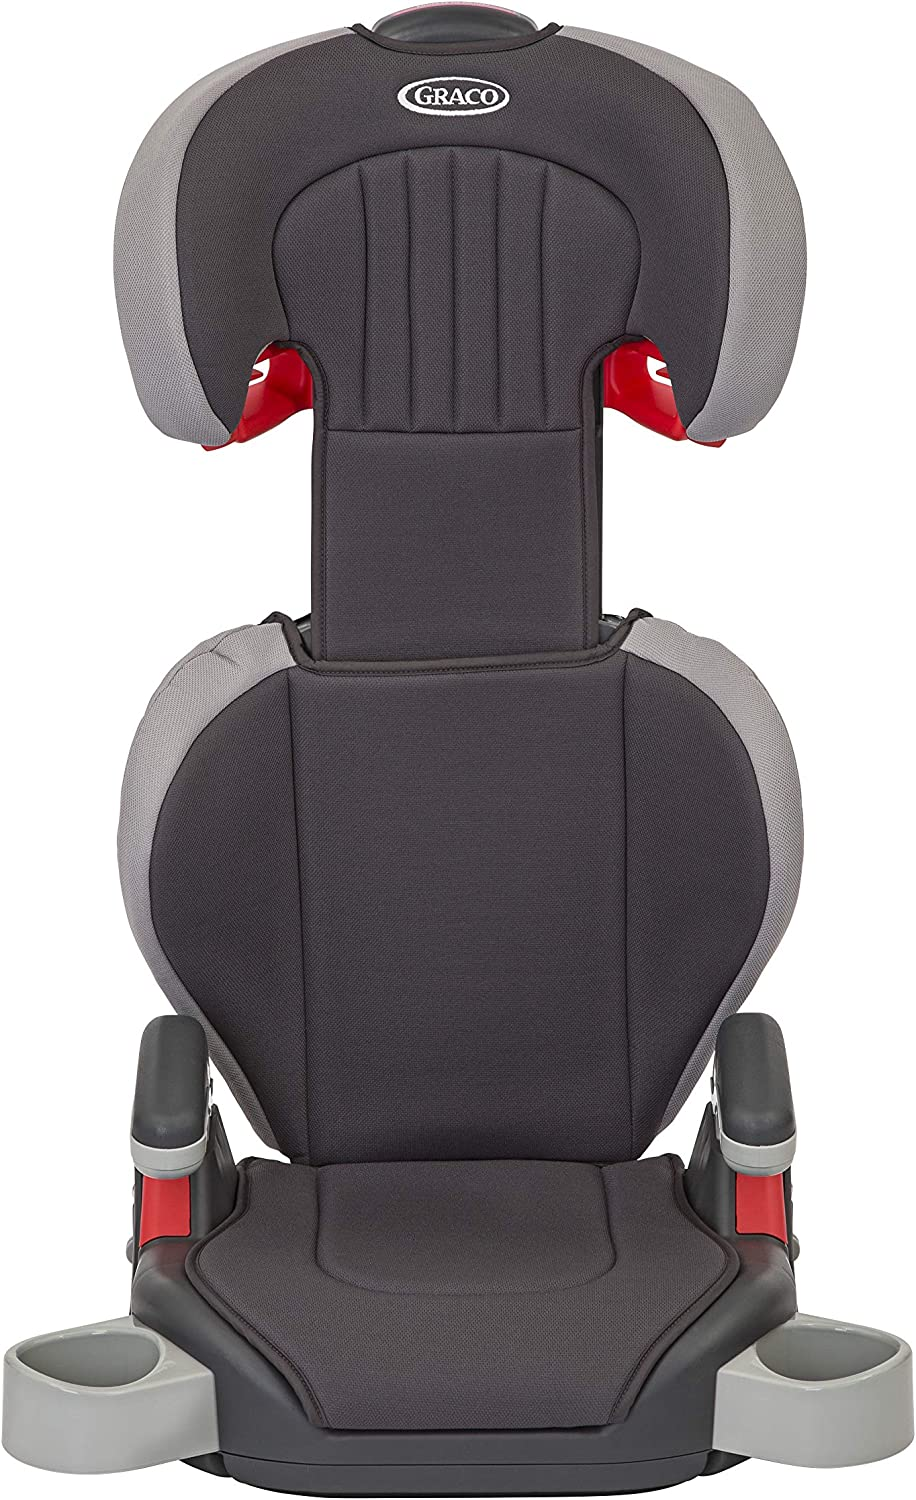 Graco Junior Maxi Lightweight Highback Booster Car Seat Iron Group 2//3 4 to 12 years, 15-36 kg